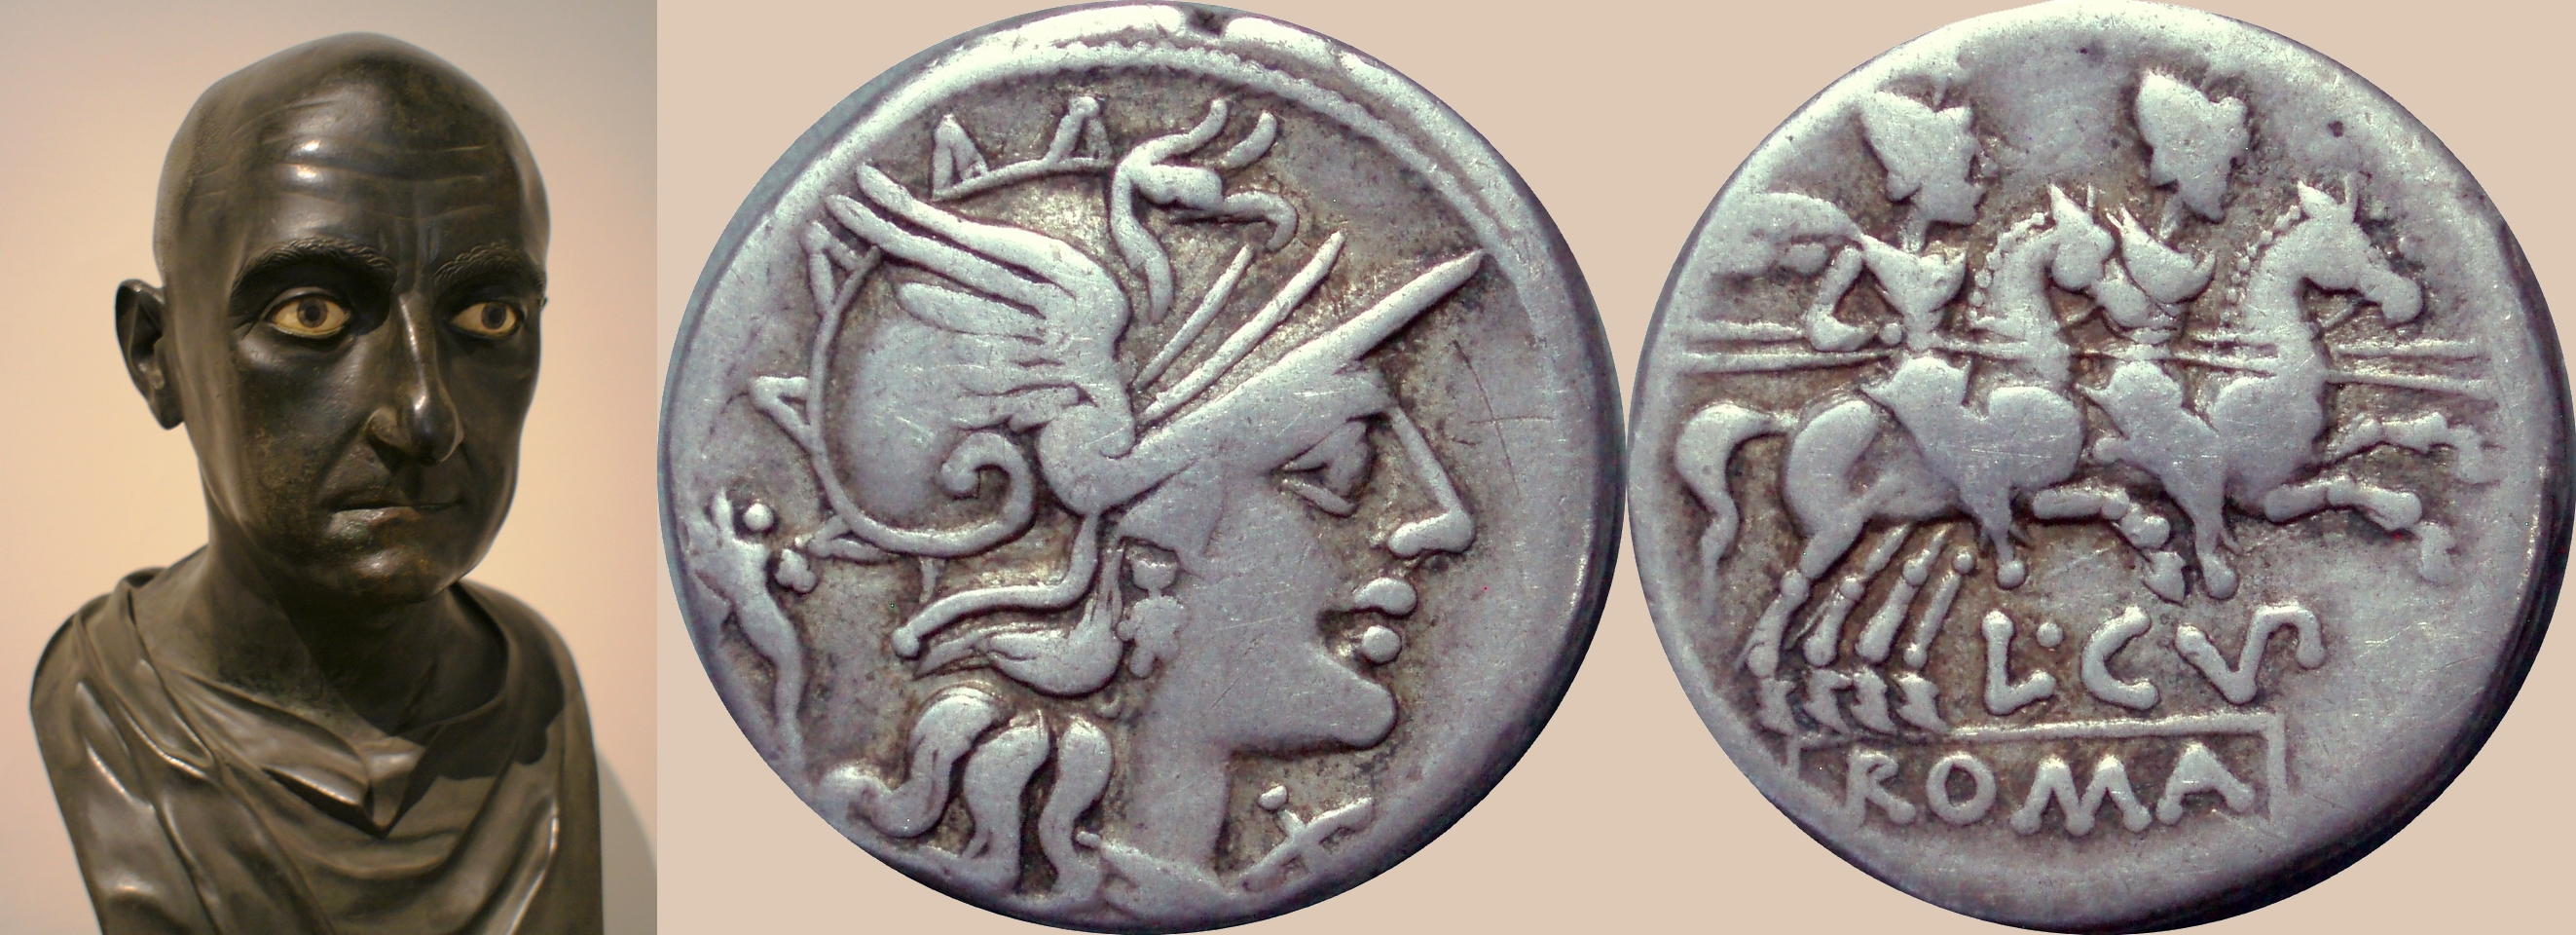 218/1 coin of Cupiennia, 147BC, in the Consulship of Scipio Aemilianus leader of third Punic war against Carthage, with a bust of Scipio Aemilianus 185-129BC